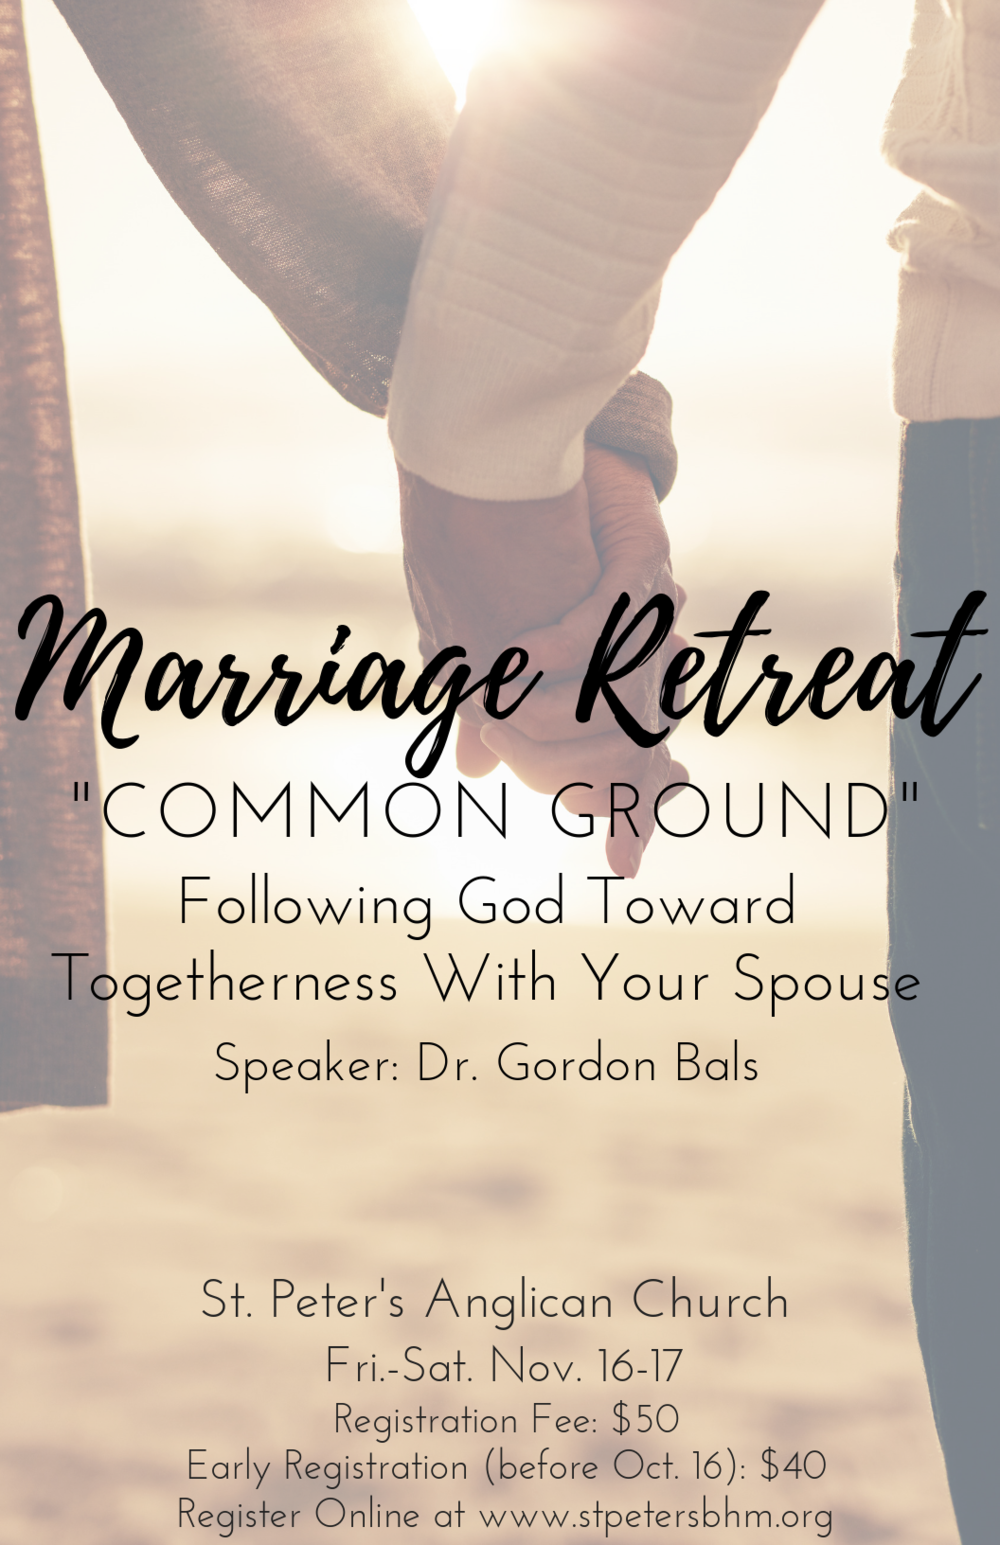 Register Today for Common Ground: Following God Toward Togetherness With Your Spouse. - Early registration cost is $40 per couple until October 16.After 10/16, registration will increase to $50.Contact Pastor Kevin if financial hardship is a barrier to attendance.Register at https://www.stpetersbhm.org/marriage-retreatFriday Nov 16 - Saturday Nov 17Detailed Schedule forthcoming.